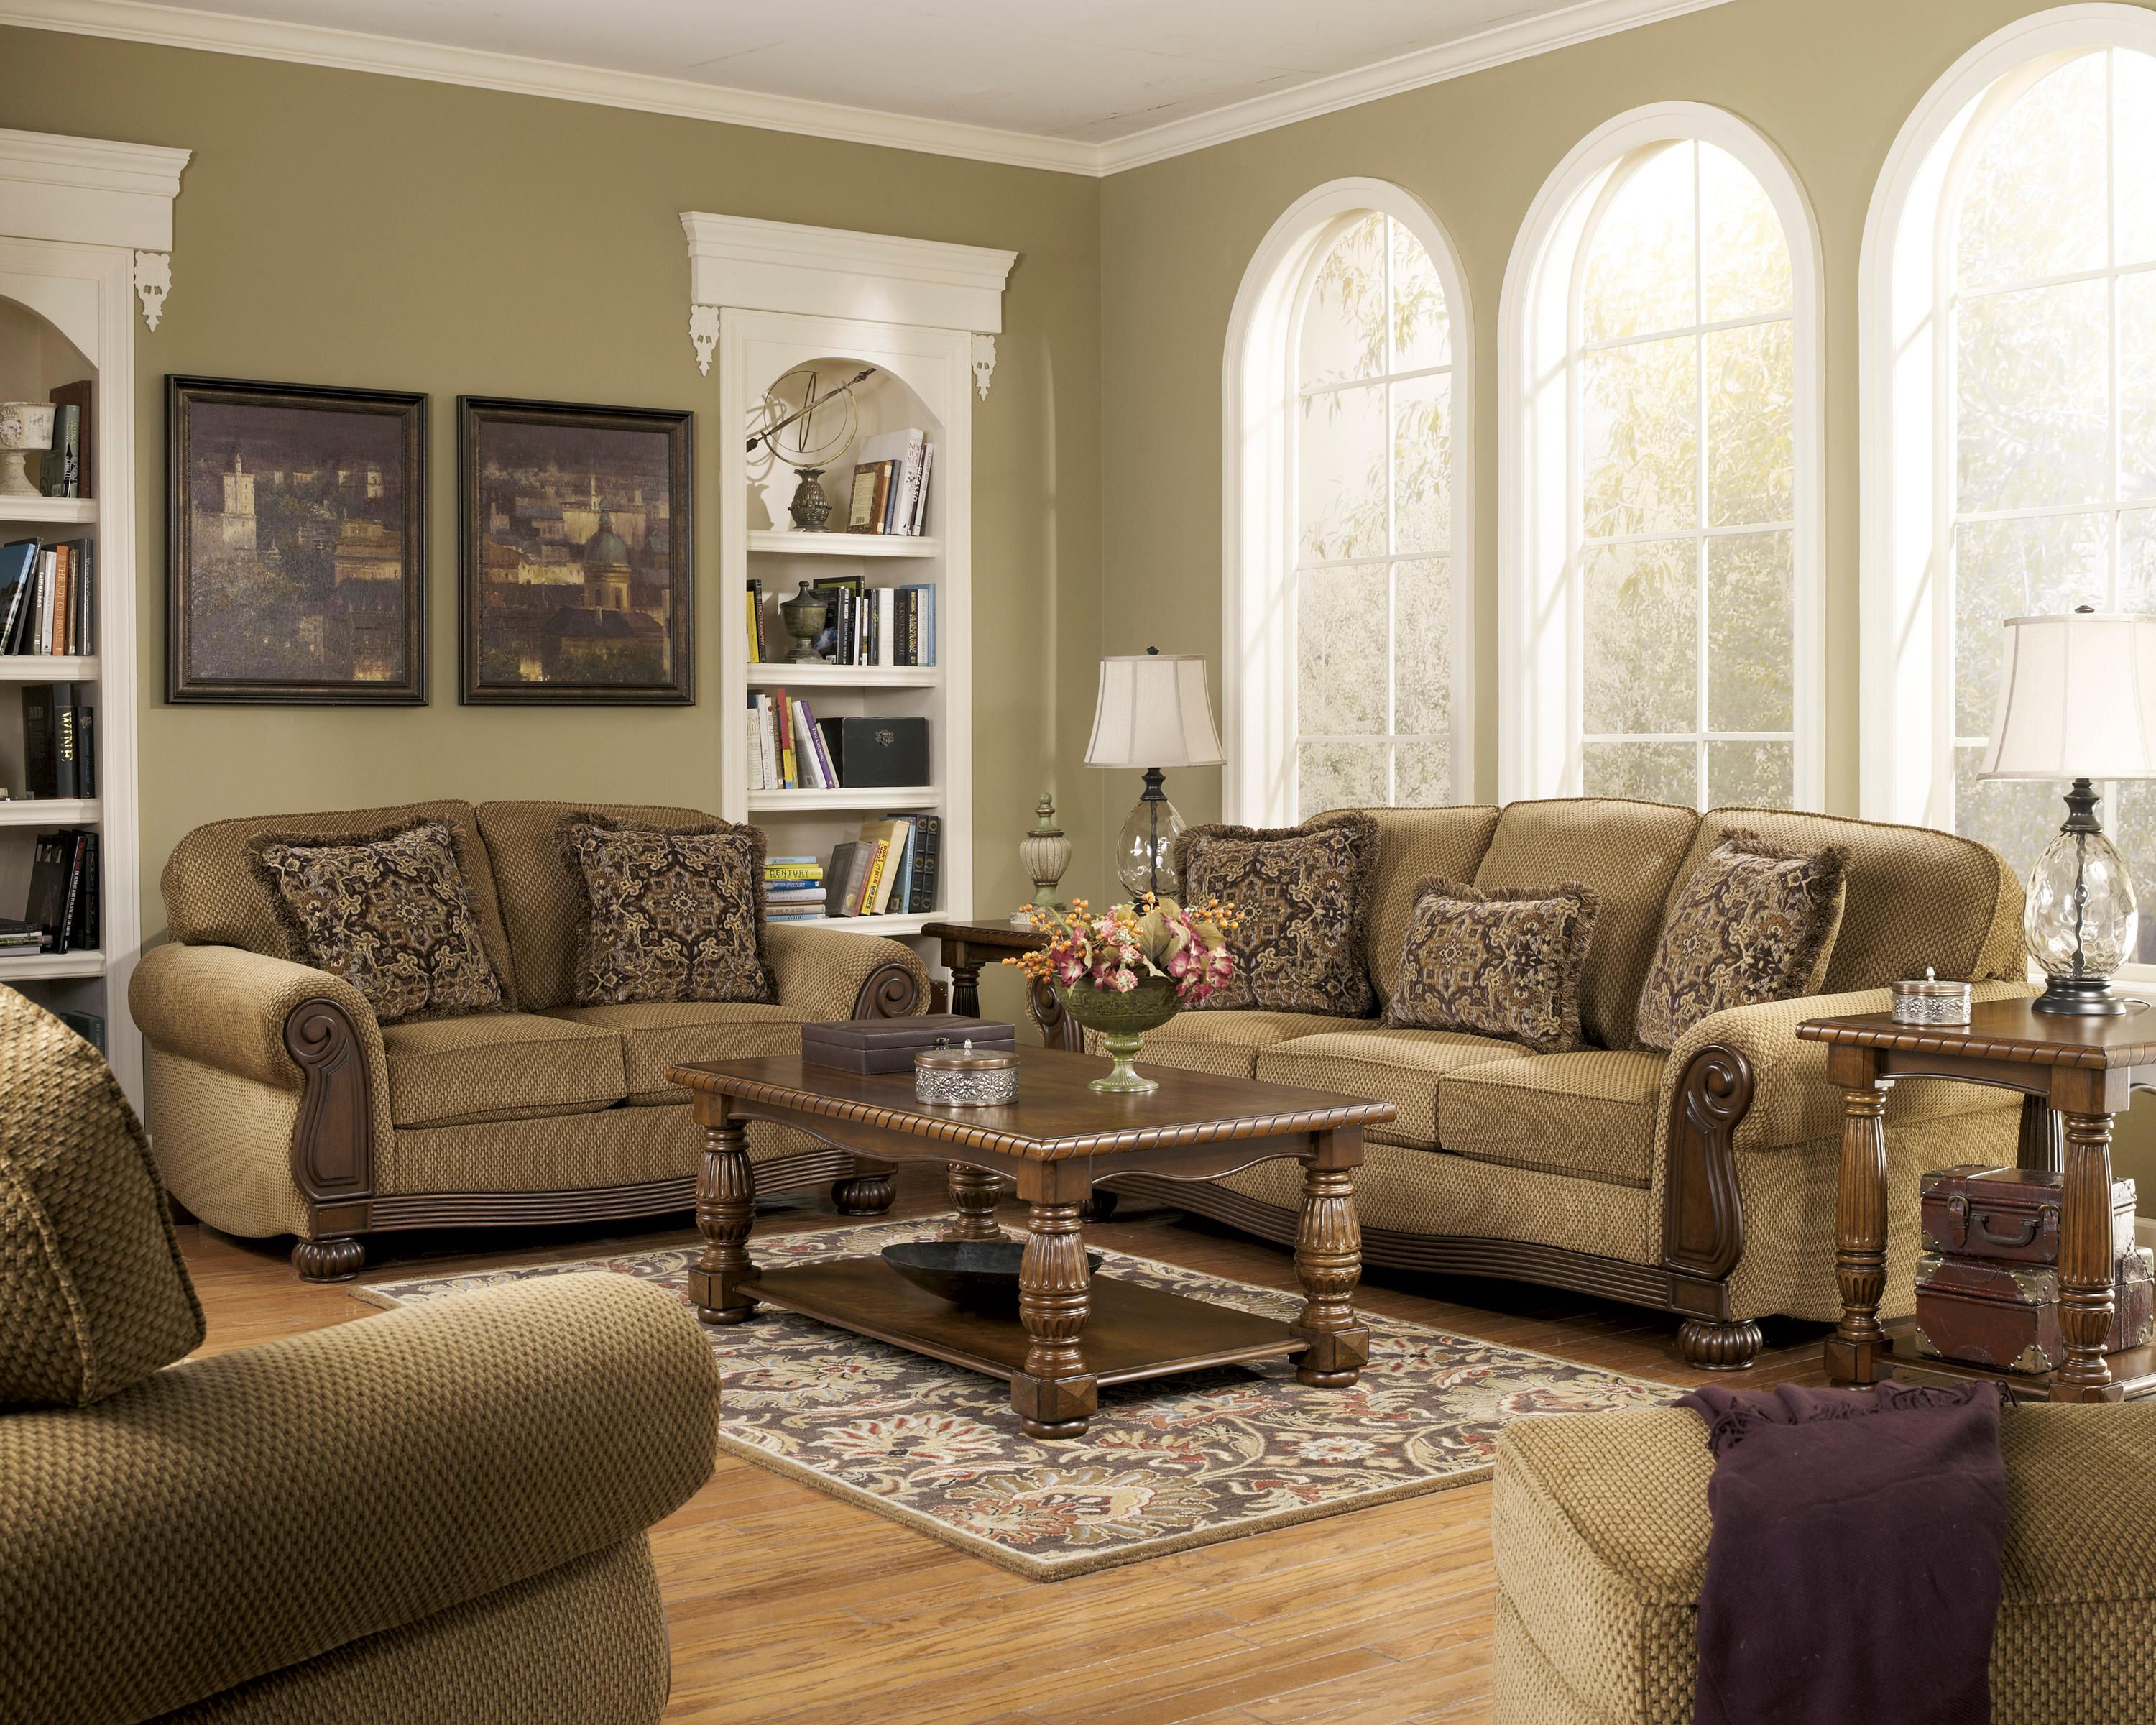 Signature Design by Ashley Lynnwood - Amber Stationary Living Room Group - Item Number: 68500 Living Room Group 3